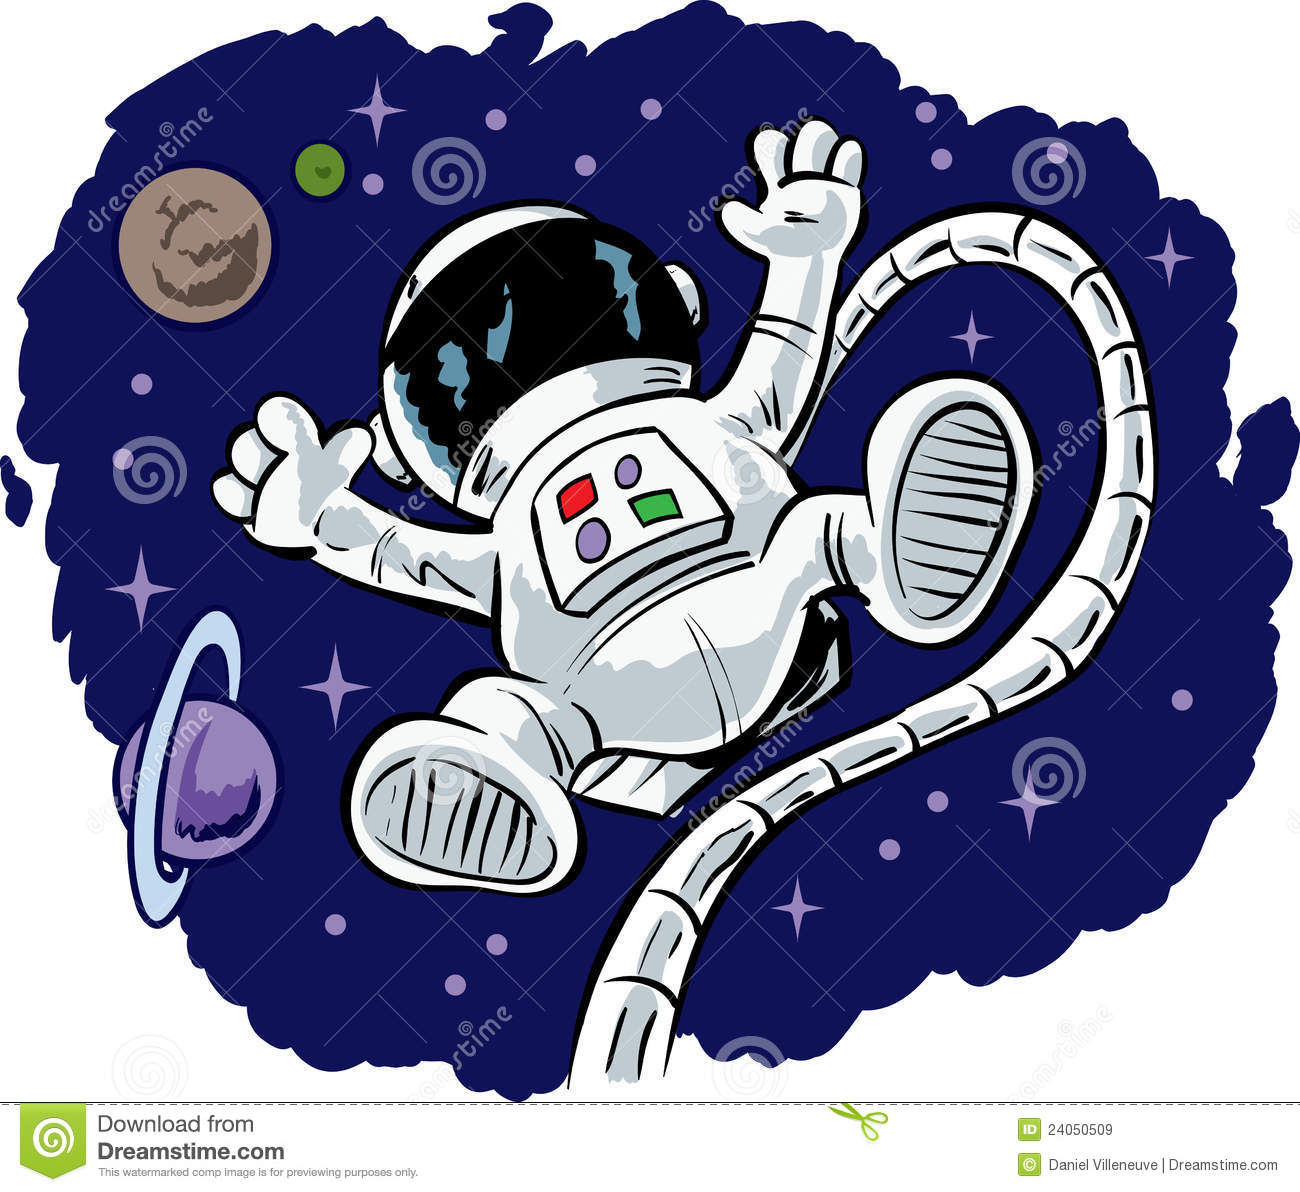 astronauts in space clipart - photo #33